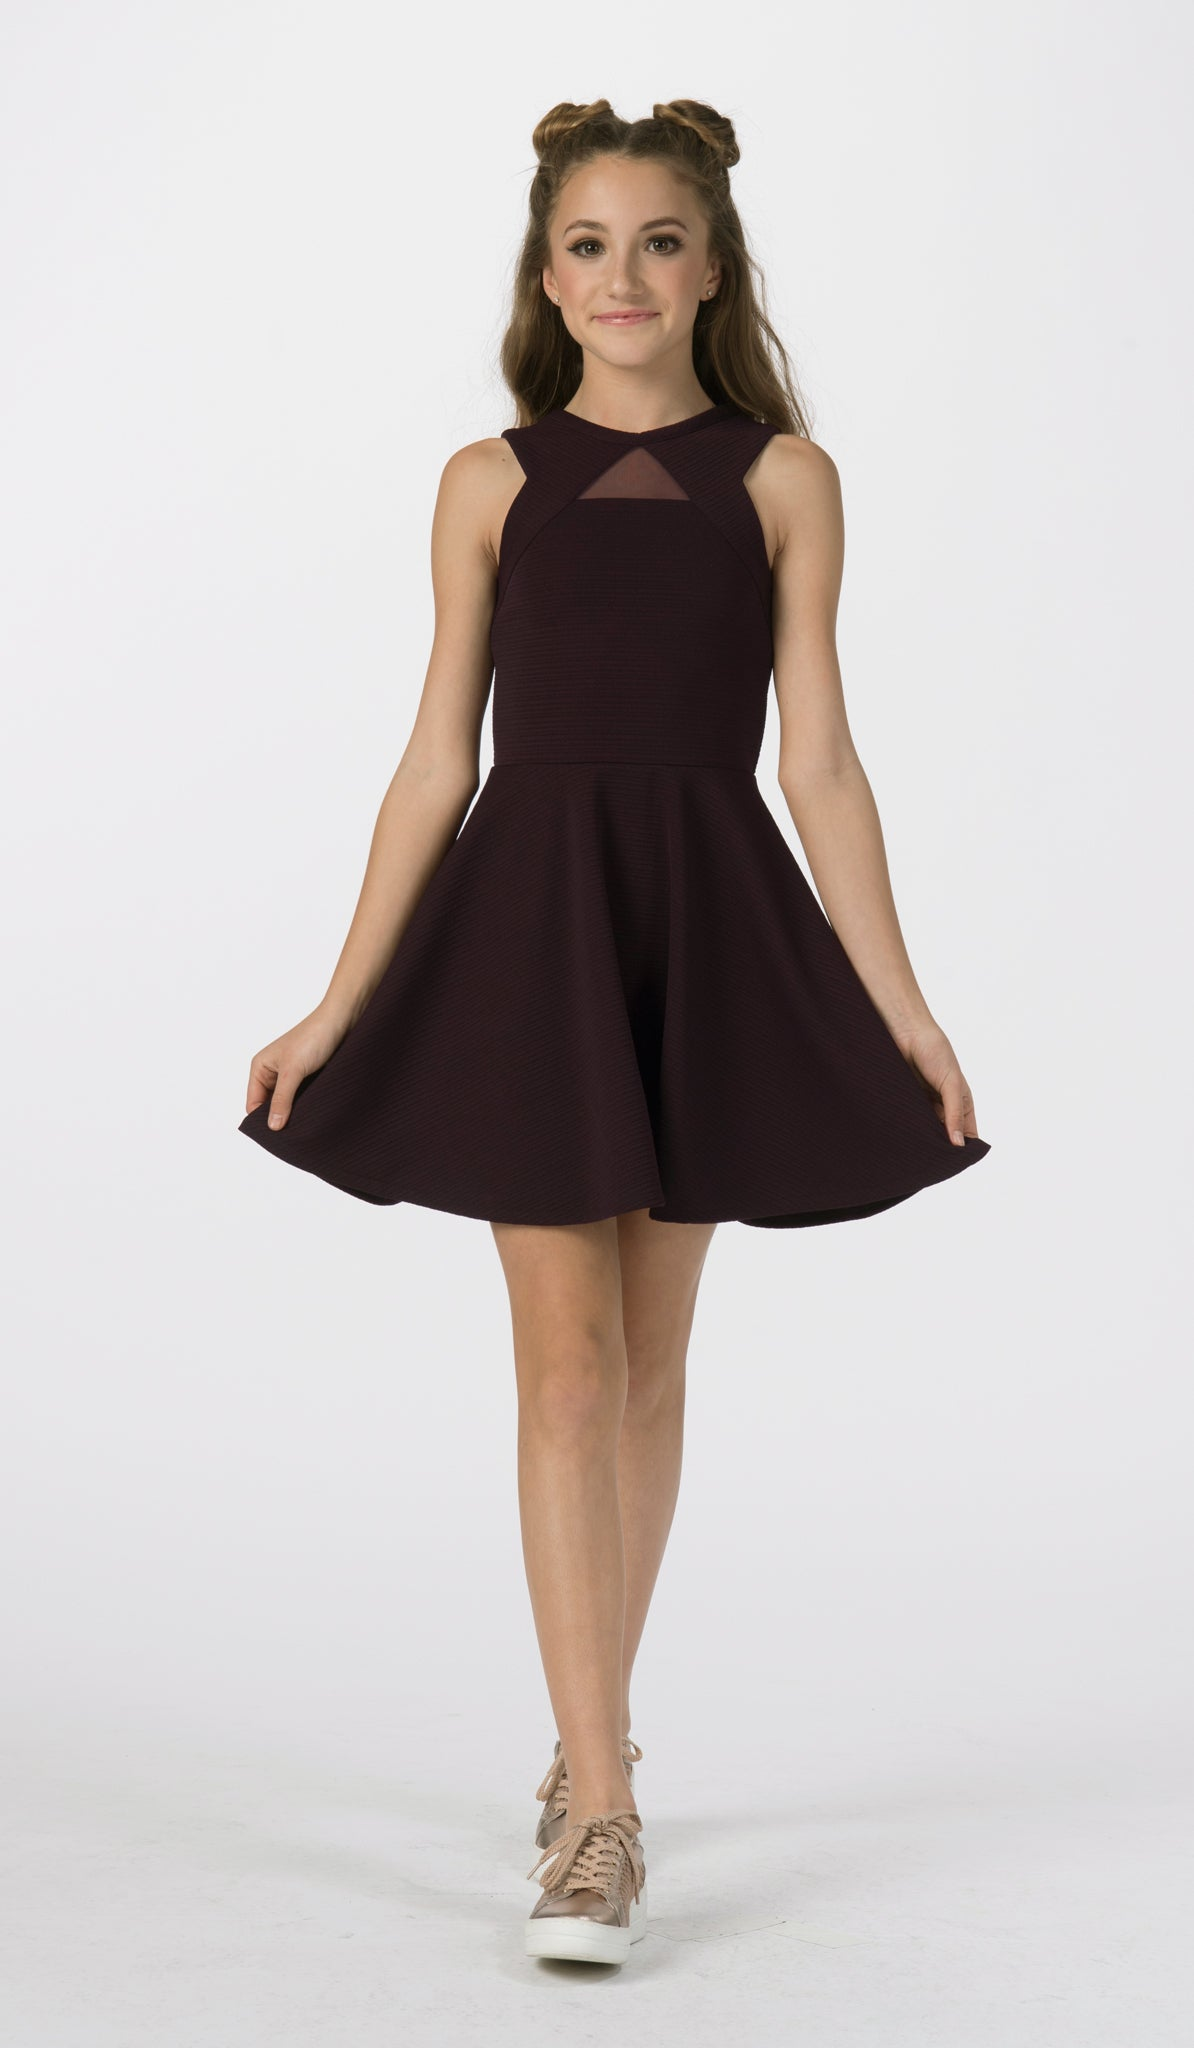 Sally Miller plum fit and flare special occasion dress front view.